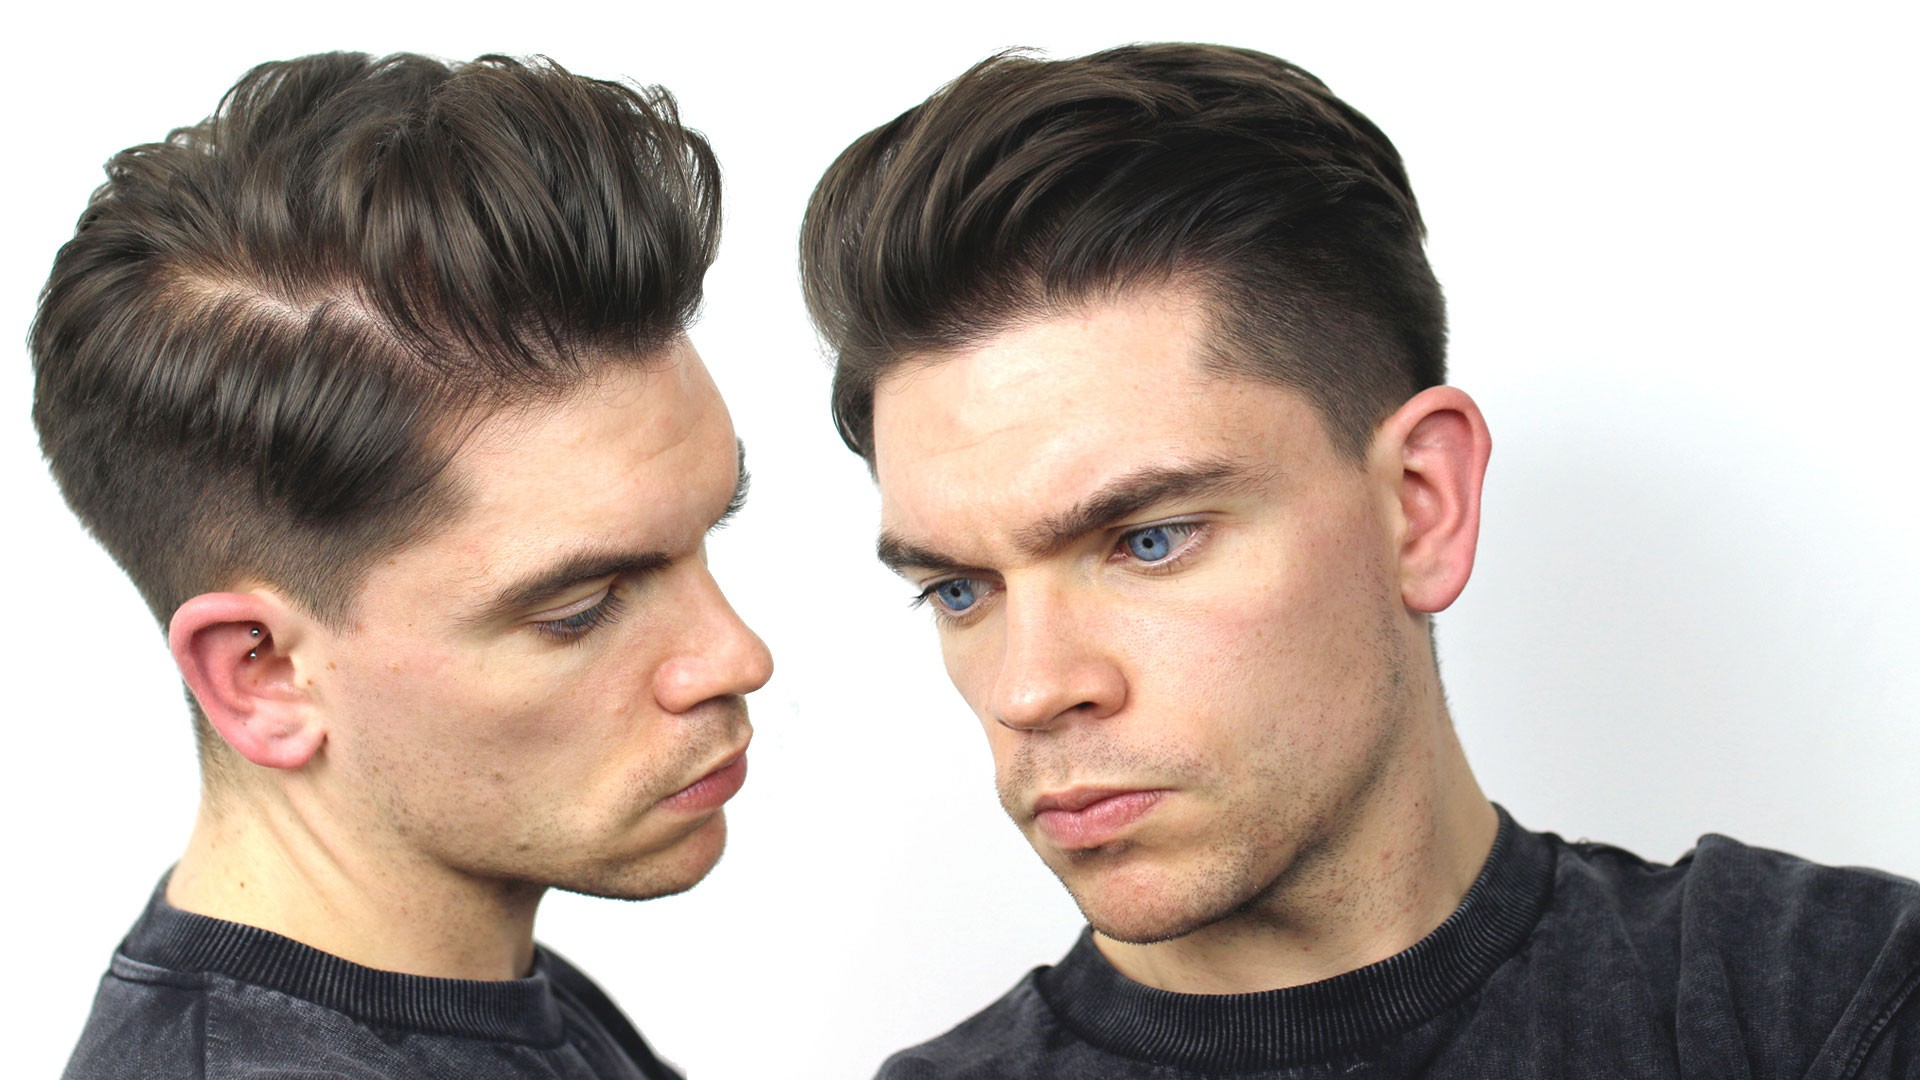 David-Beckham-Hair-How-To-Tutorial-Robin-James